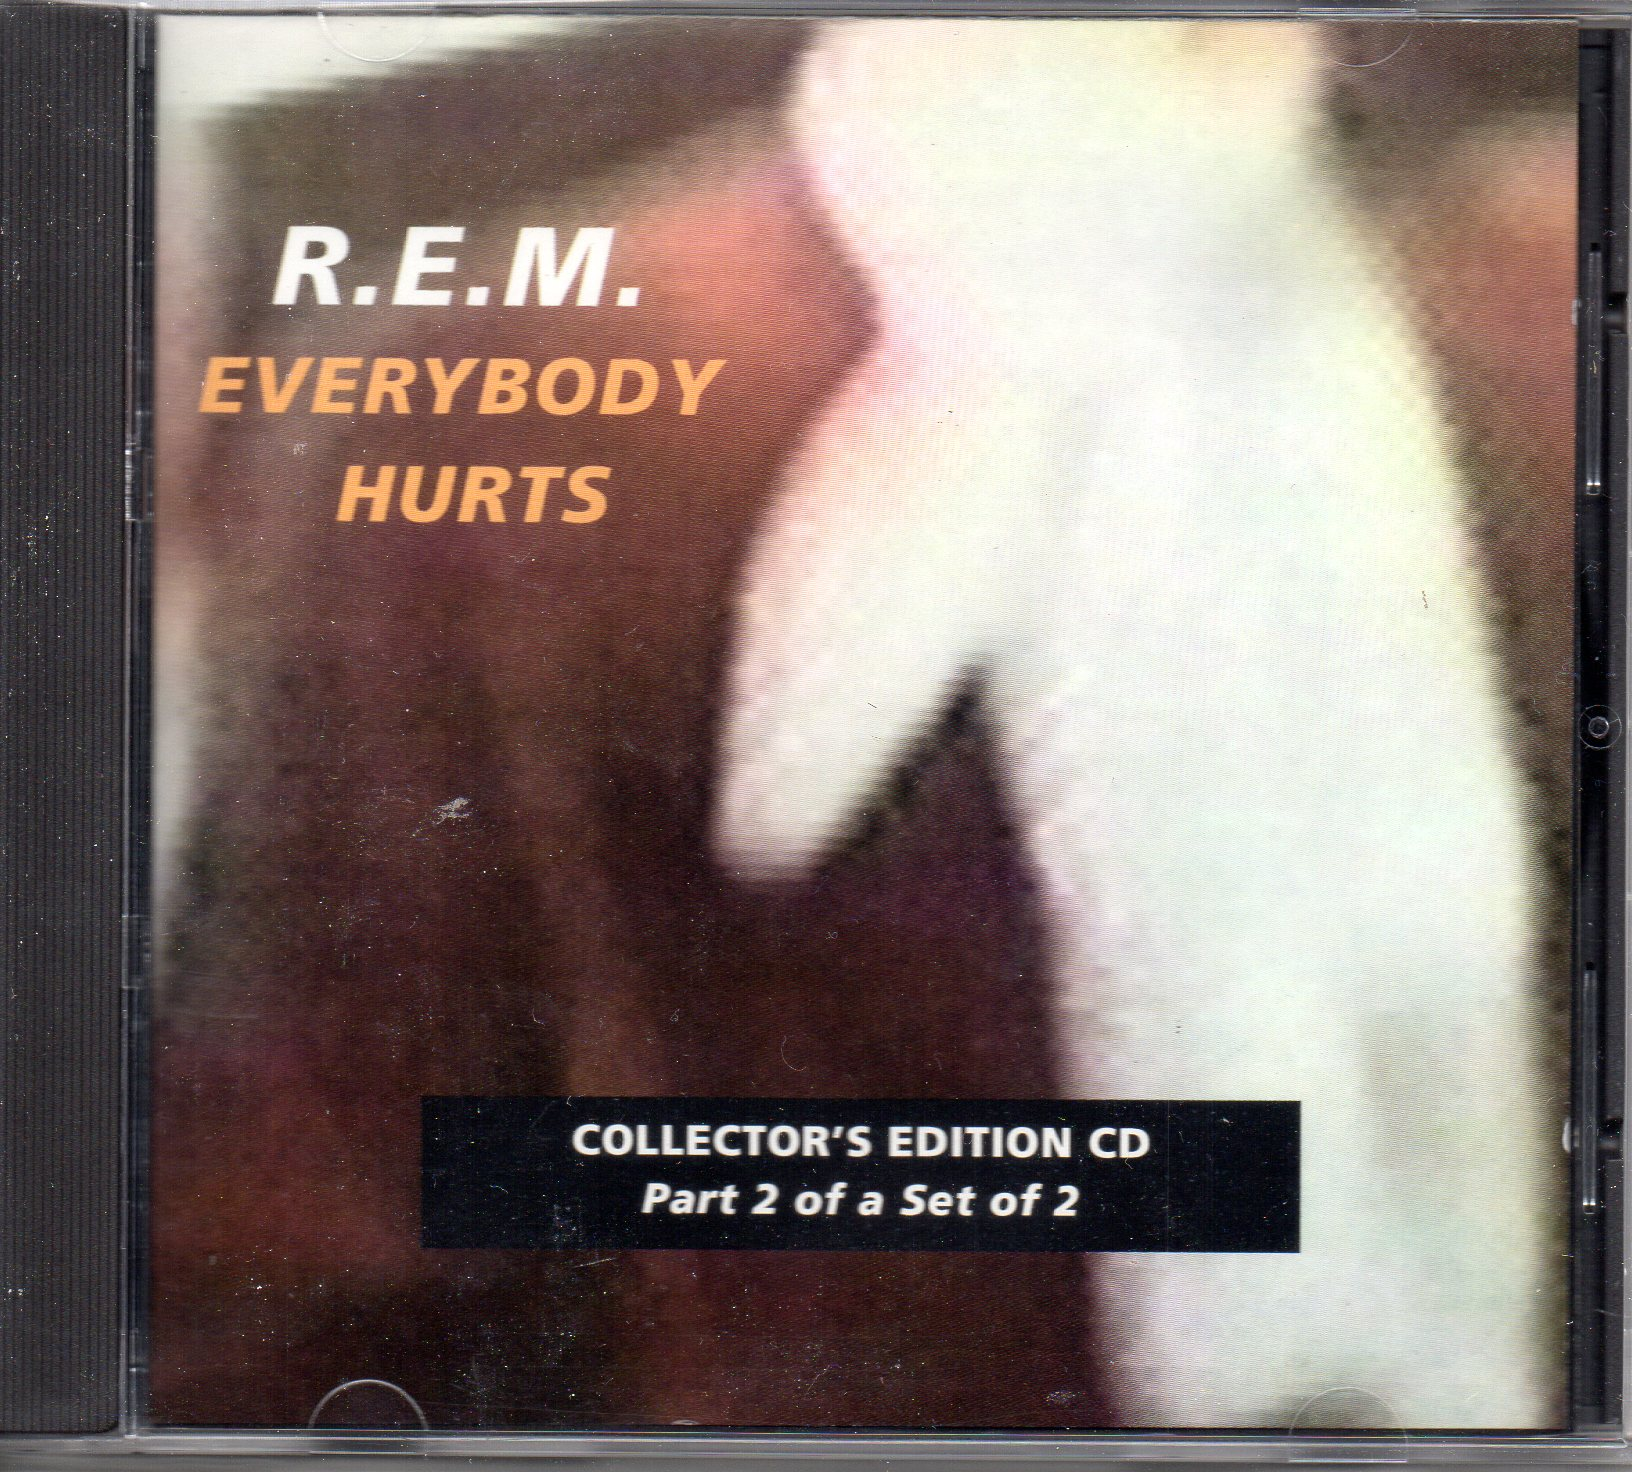 R.E.M. - Everybody Hurts Collector's Edition 3-track Jewel Case